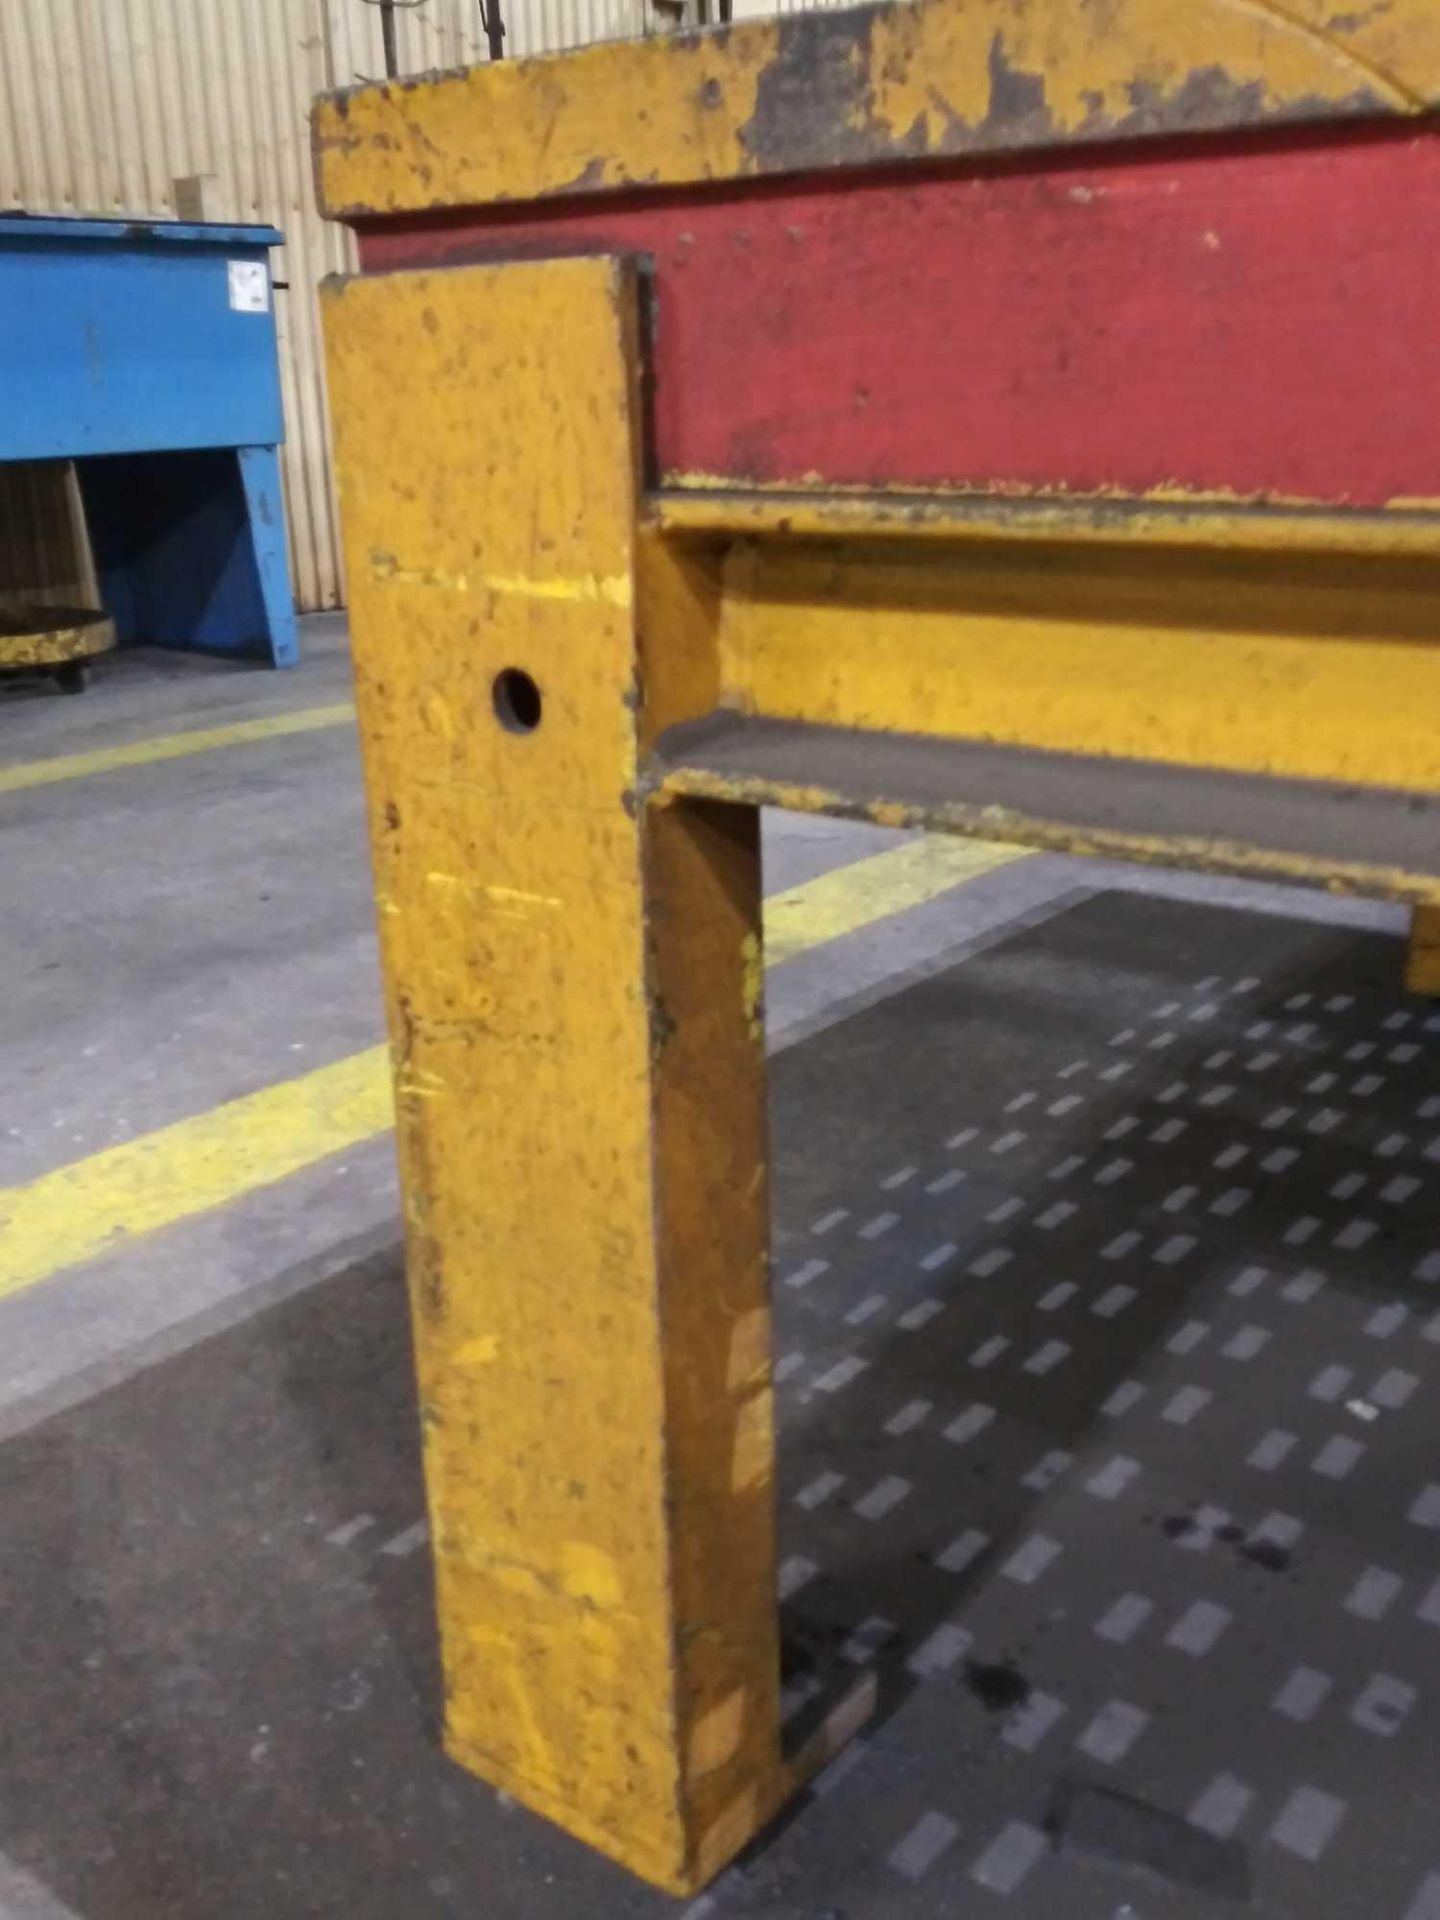 """Acorn Platens & Tools Welding Table, 60""""x60""""x30"""", square hole dimensions 1-3/4"""", inv1080 - Image 10 of 15"""